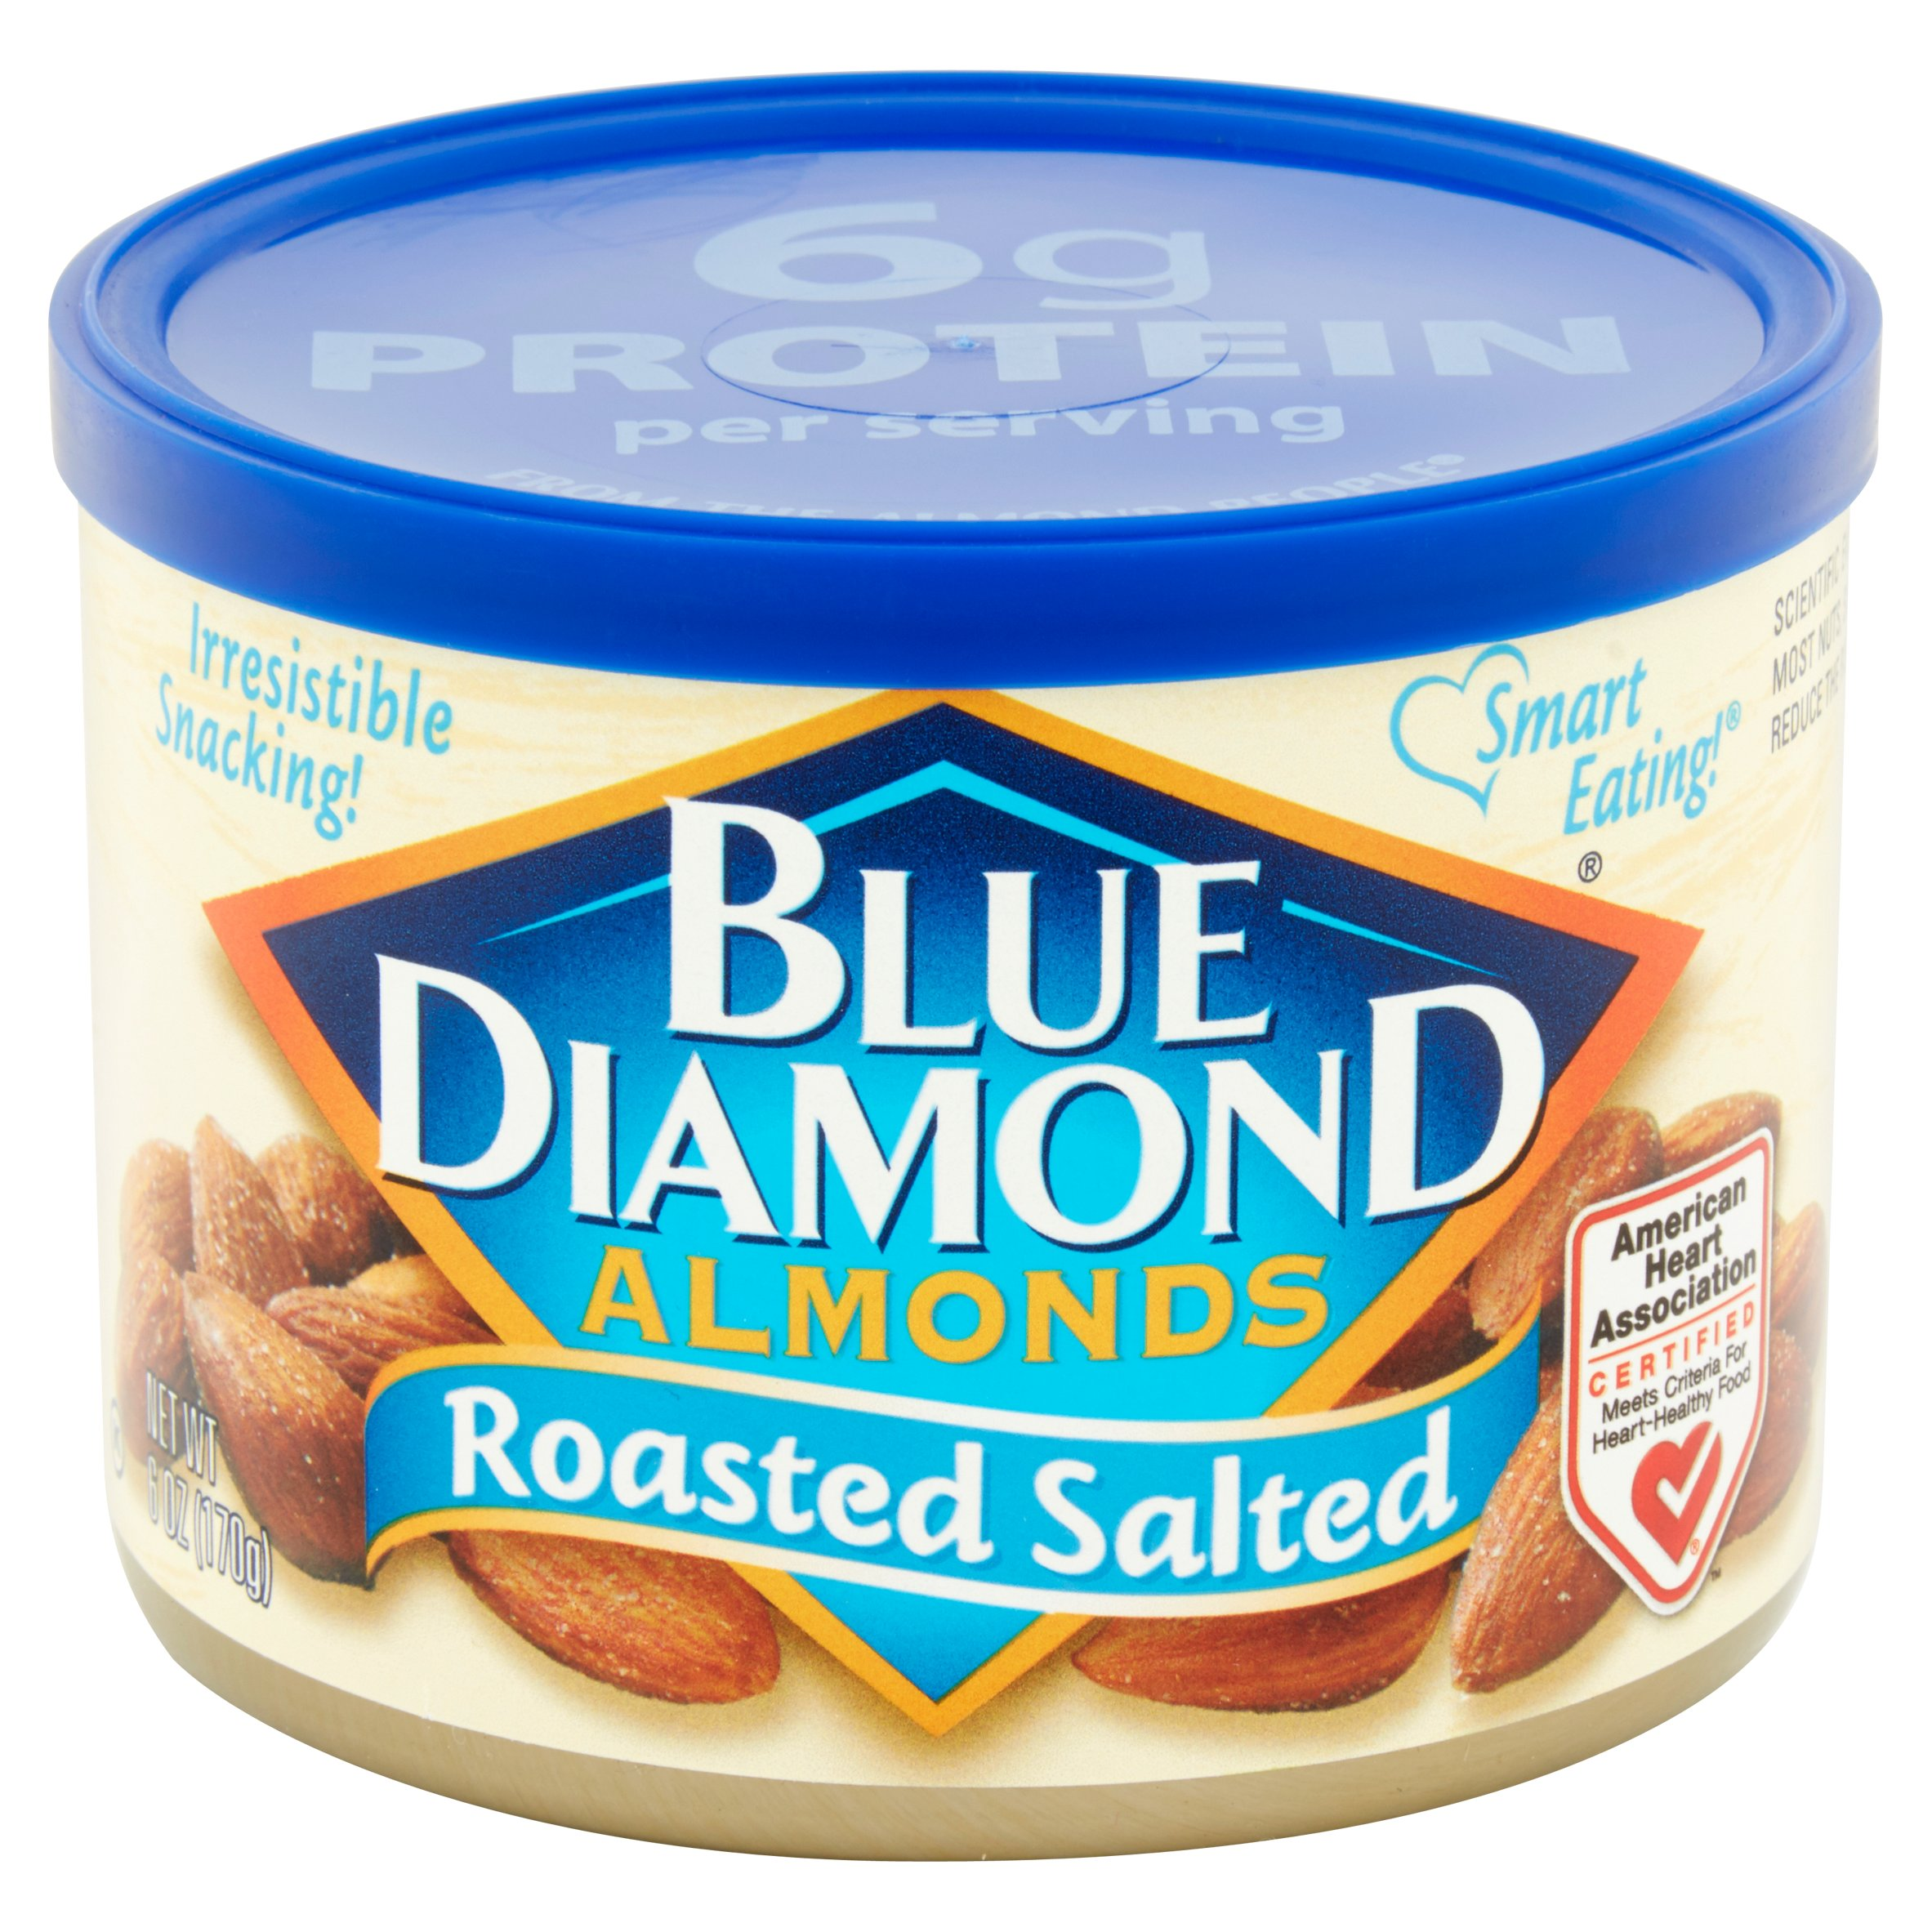 Blue Diamond Almonds Roasted Salted 6 oz. Canister - Walmart.com